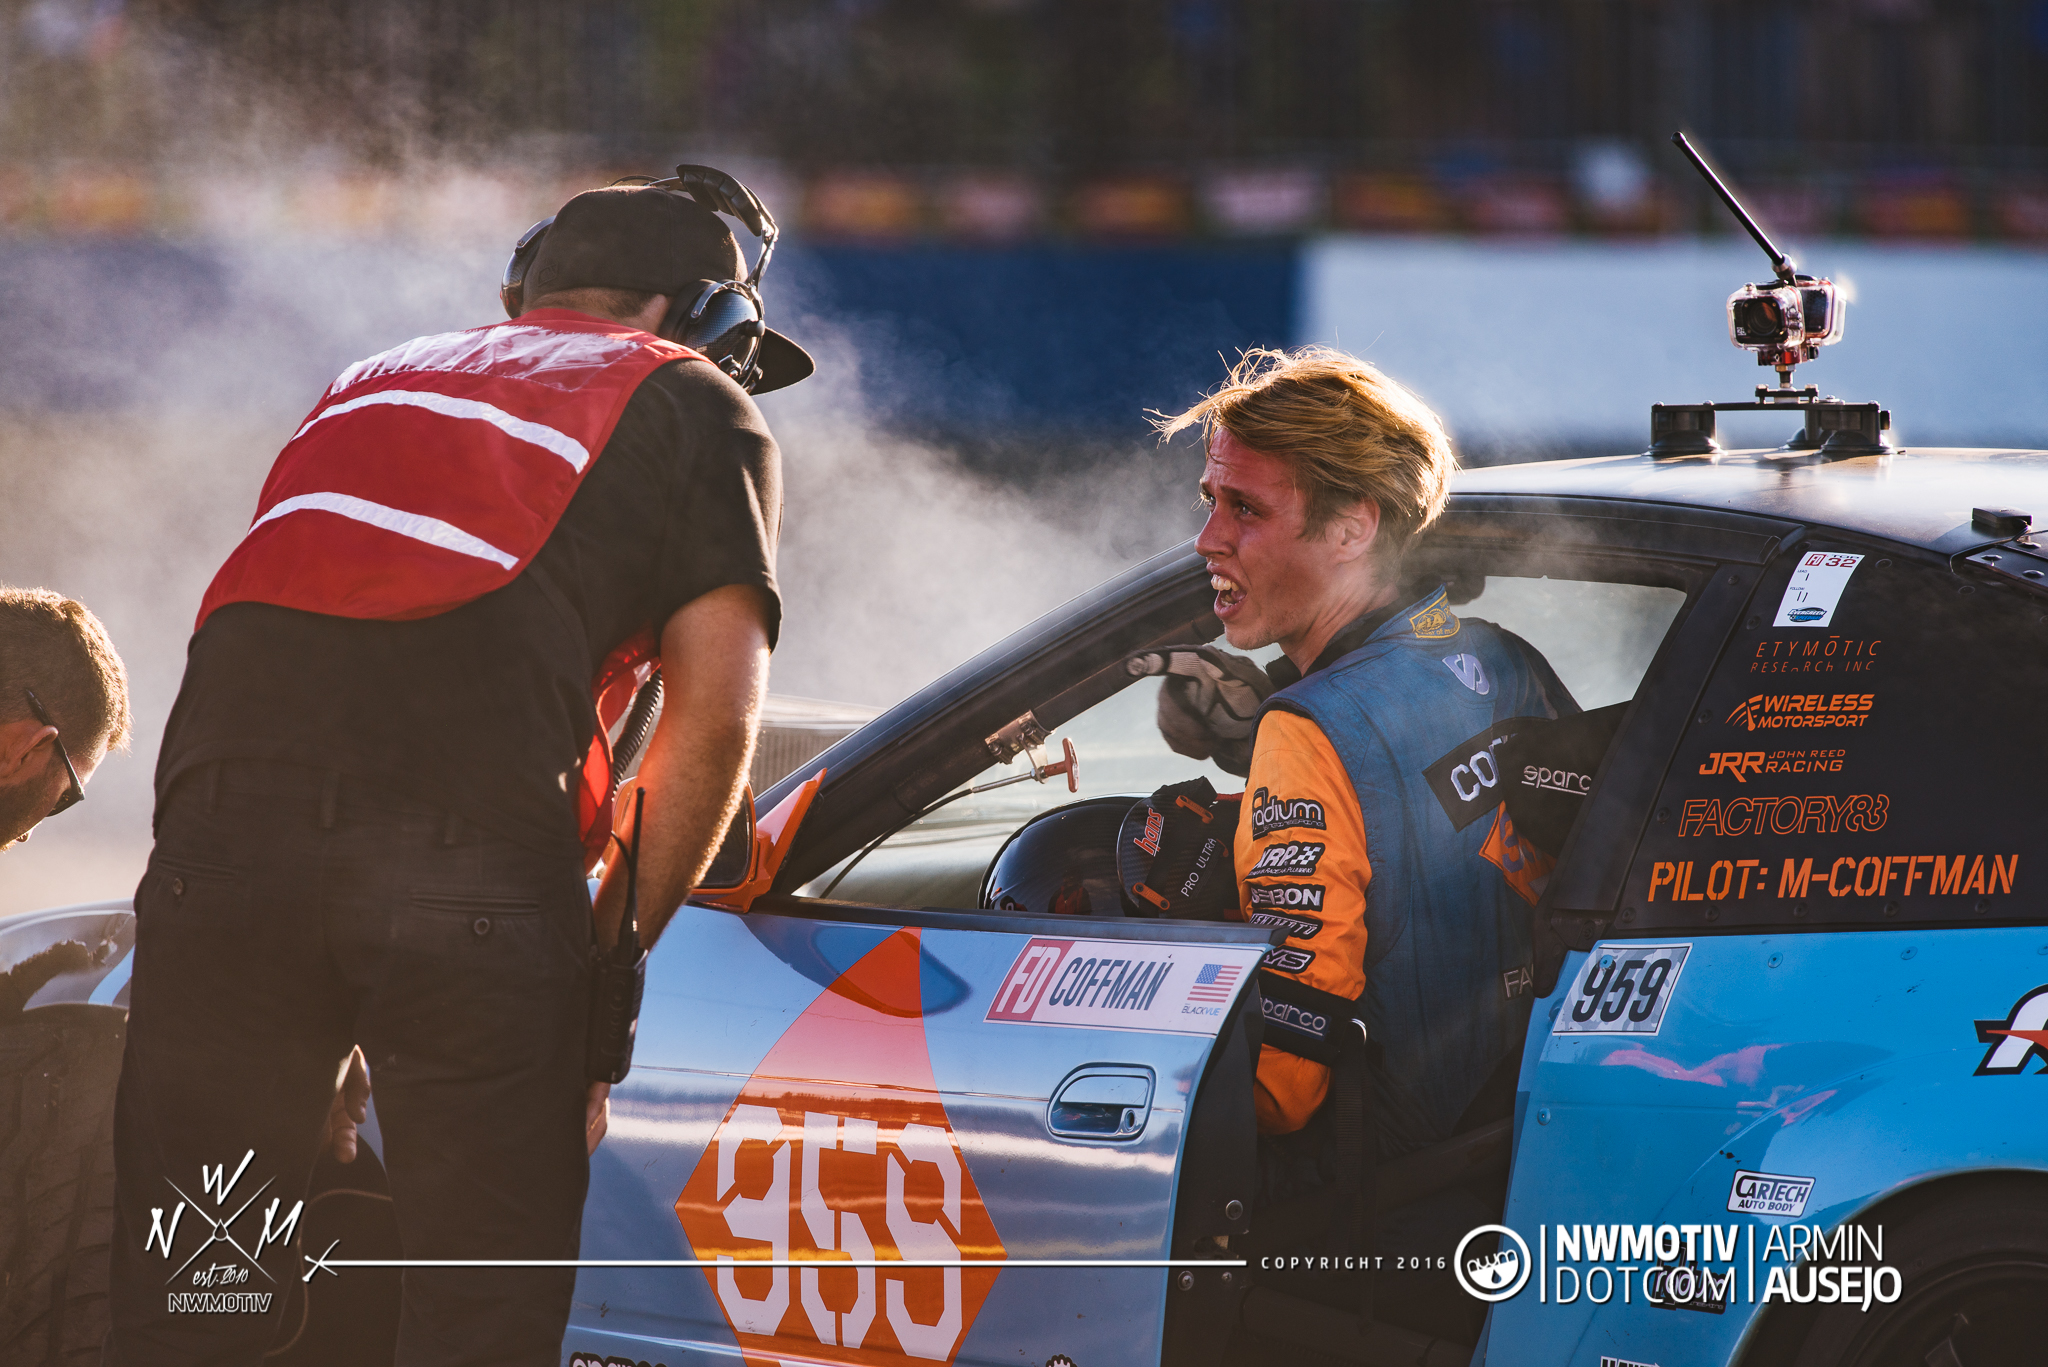 Matt Coffman trying to get his car off the track